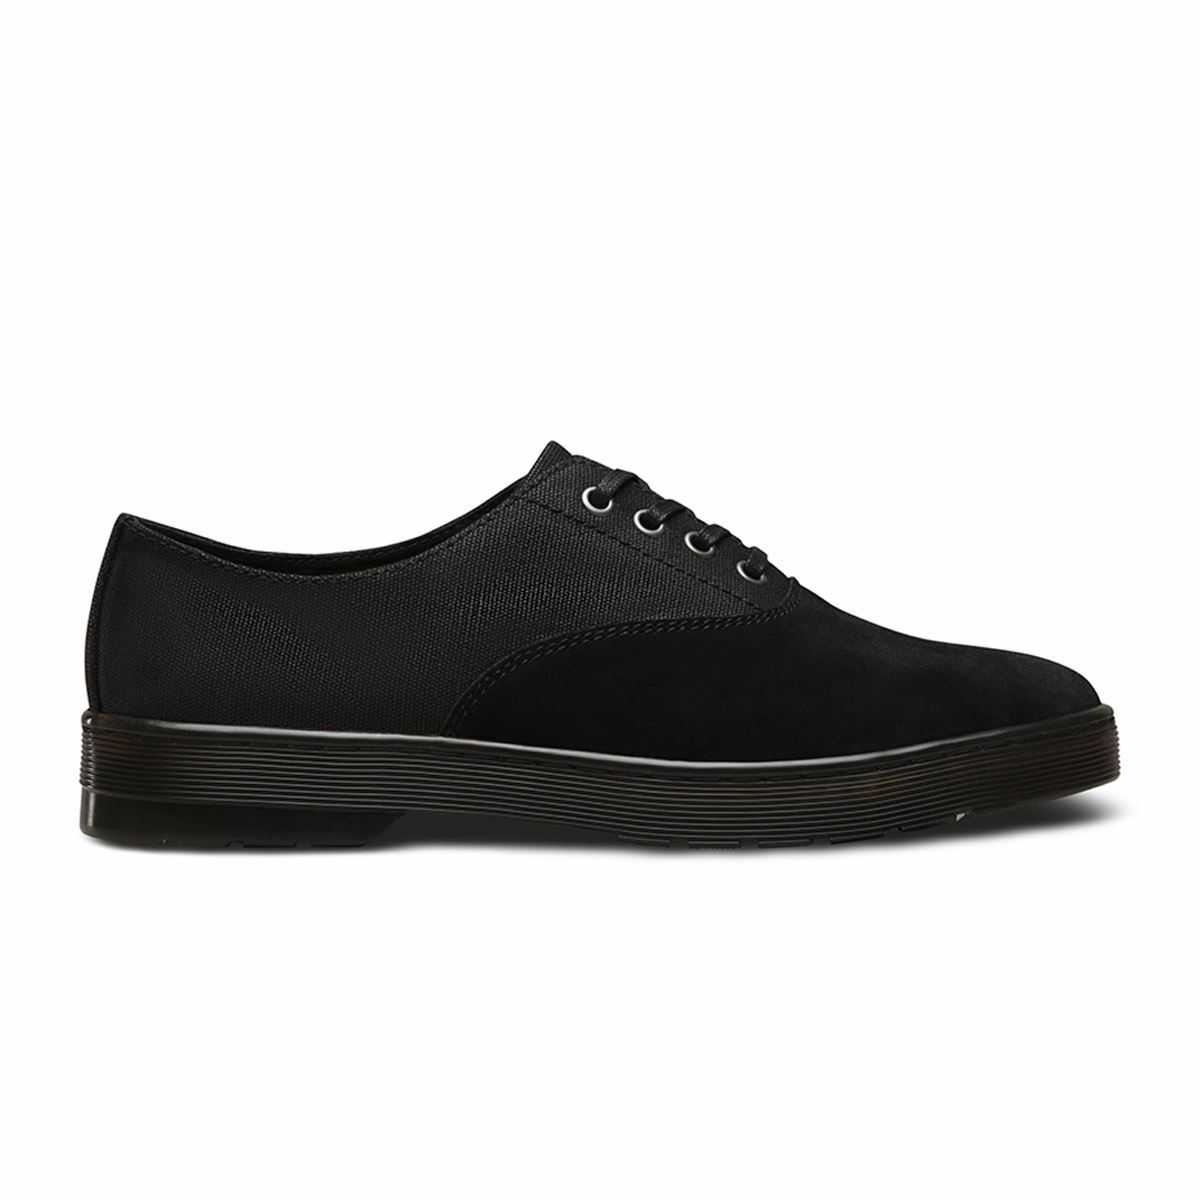 Dr.Martens Lakewood Waxy Canvas Black Mens Shoes